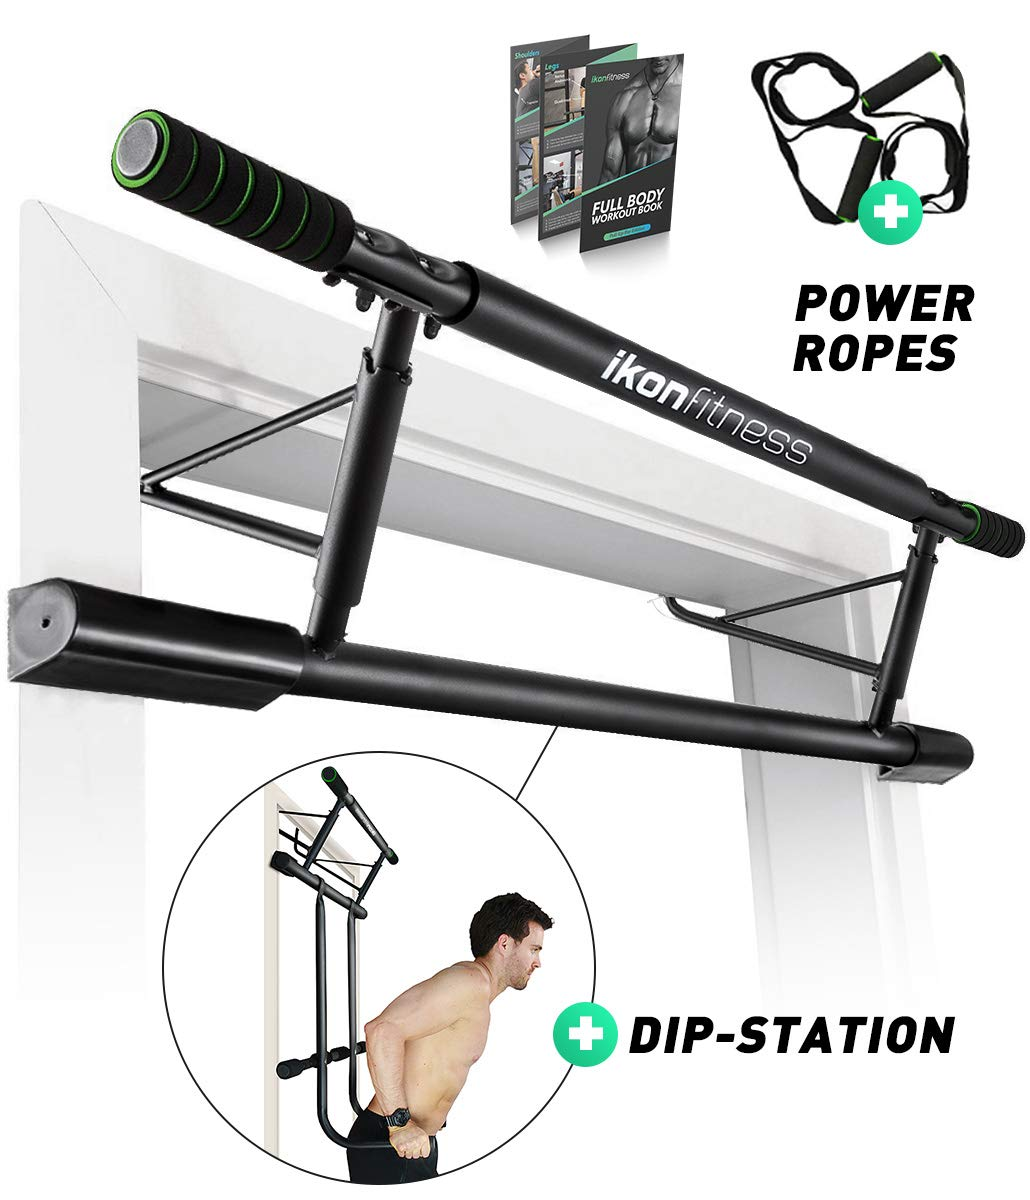 Ikonfitness Ultimate 4 in 1 Doorway Trainer - Raised Height Pull Up Bar, Dips Bar & Power Ropes for A Total Body Home Workout - USA Original Patent, USA Designed, USA Shipped, USA Warranty